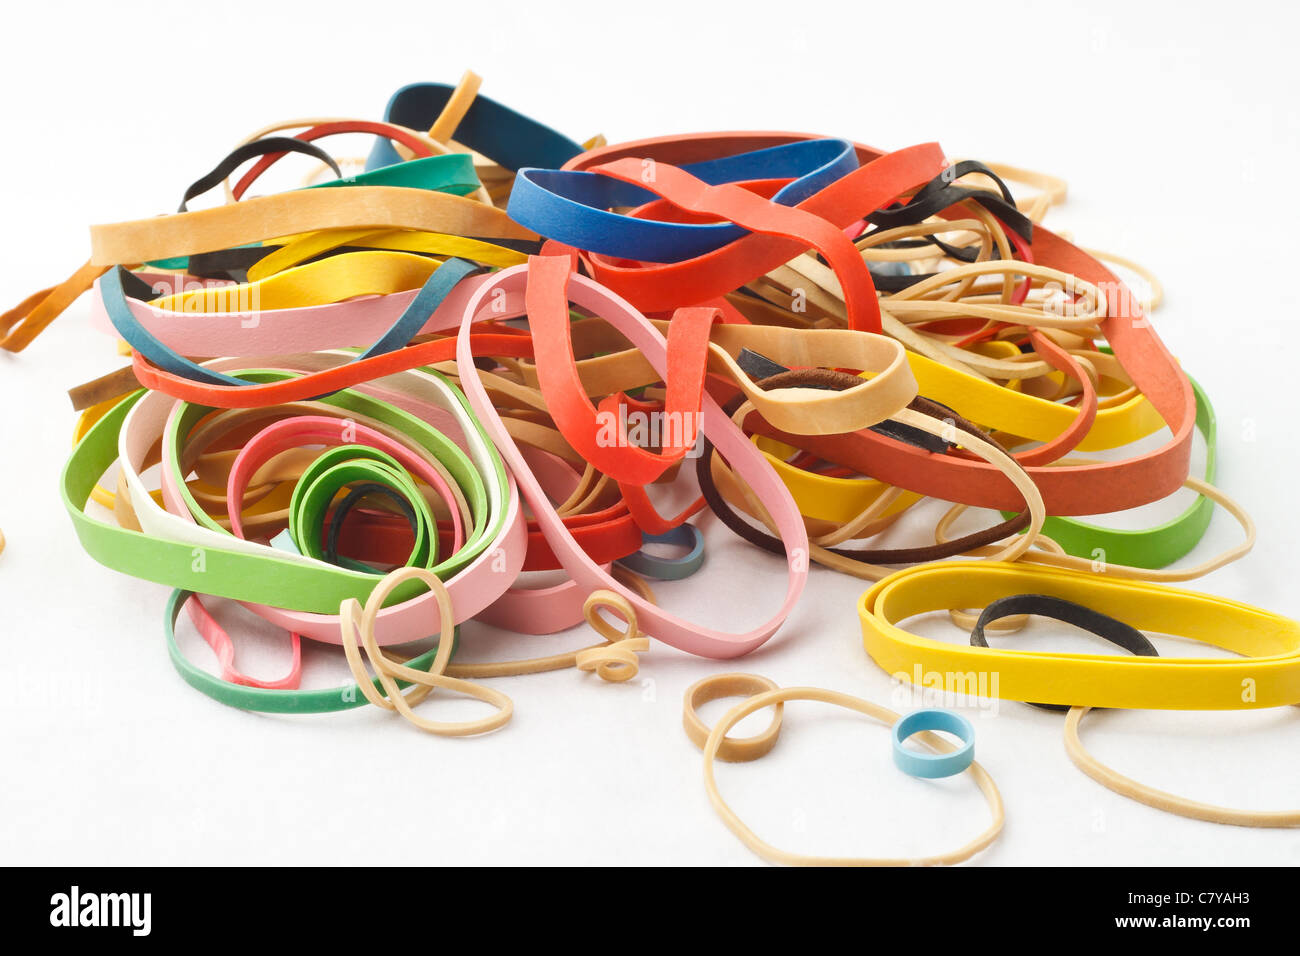 Assortment of rubber bands piled against white background - Stock Image